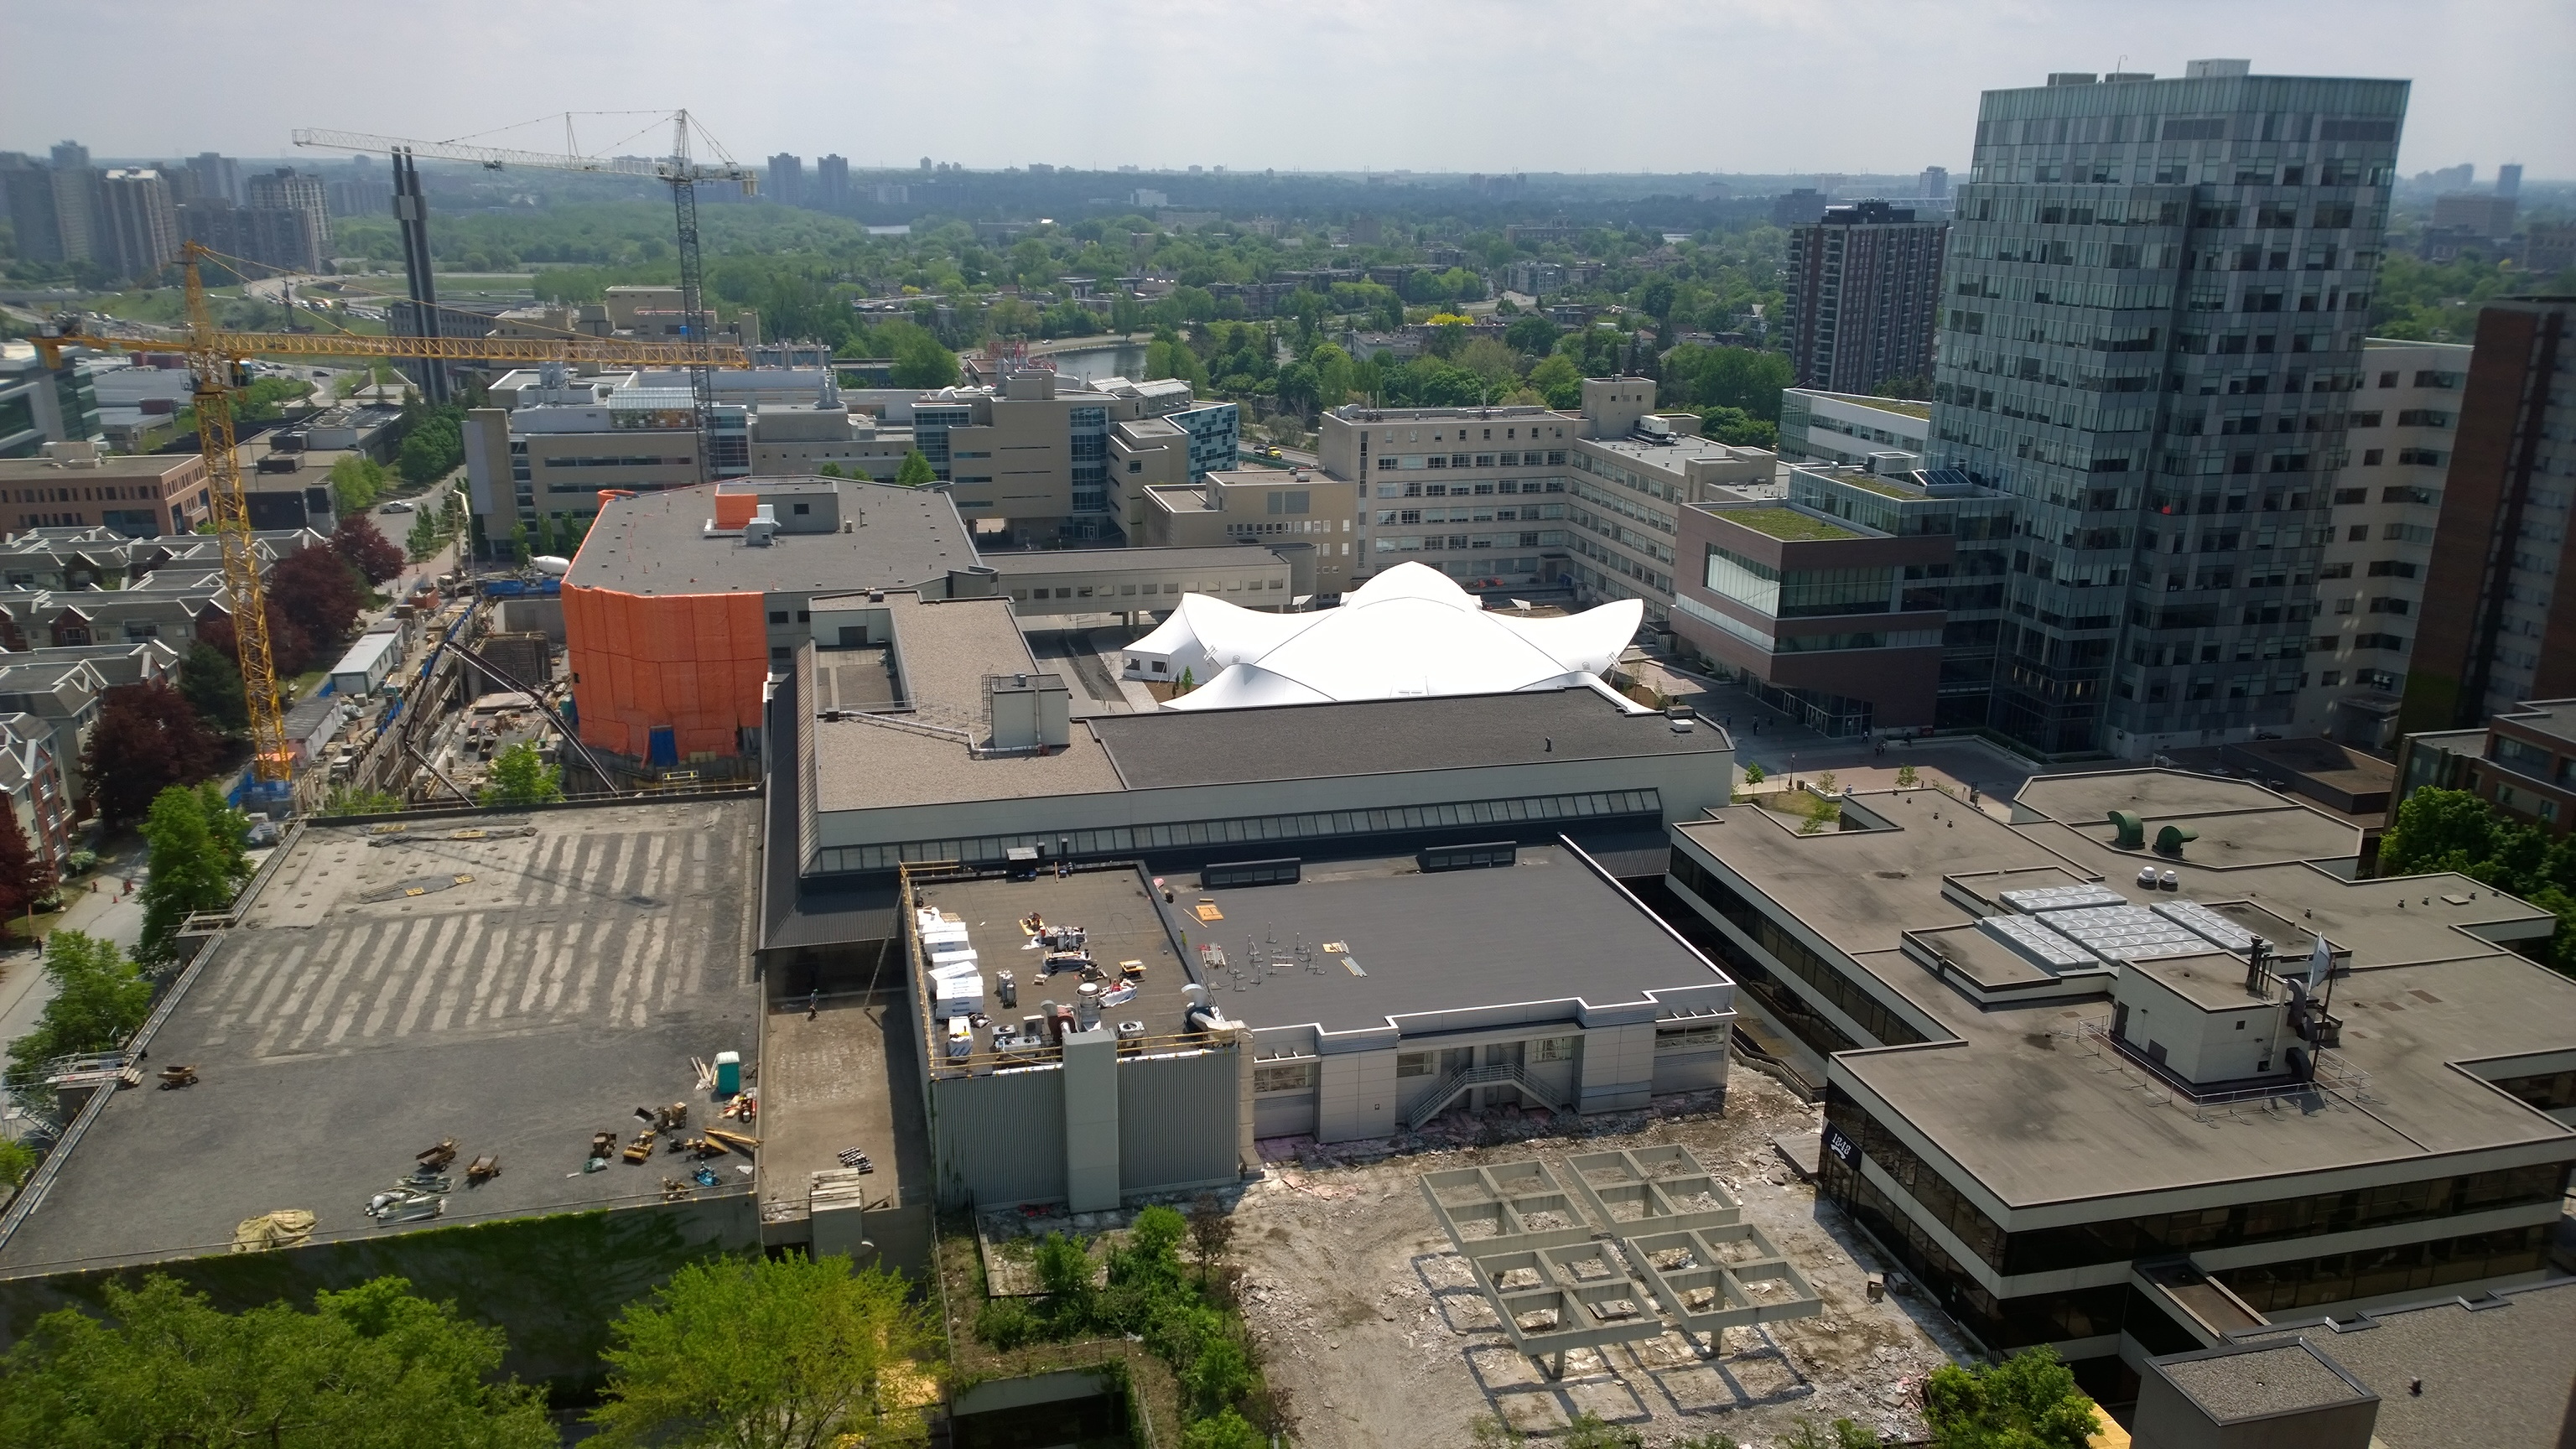 Aerial photo of campus construction with three cranes and trees and buildings in the background.